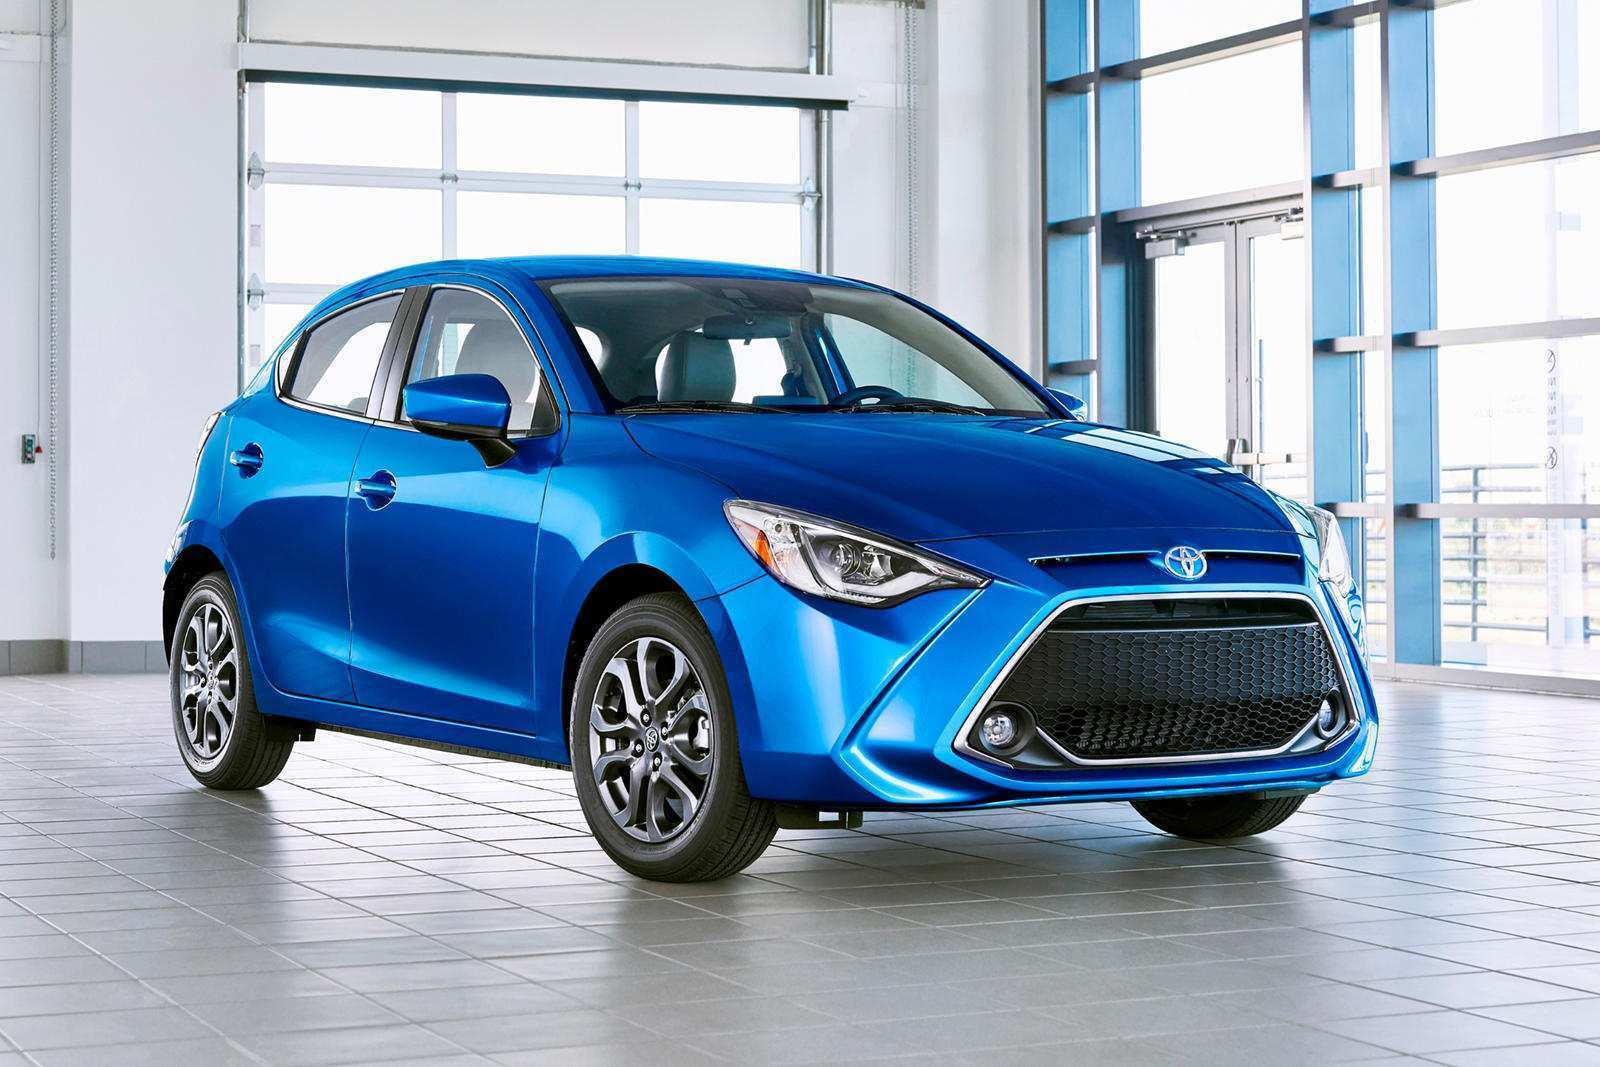 23 New Best 2019 Yaris Mazda Rumors Exterior with Best 2019 Yaris Mazda Rumors